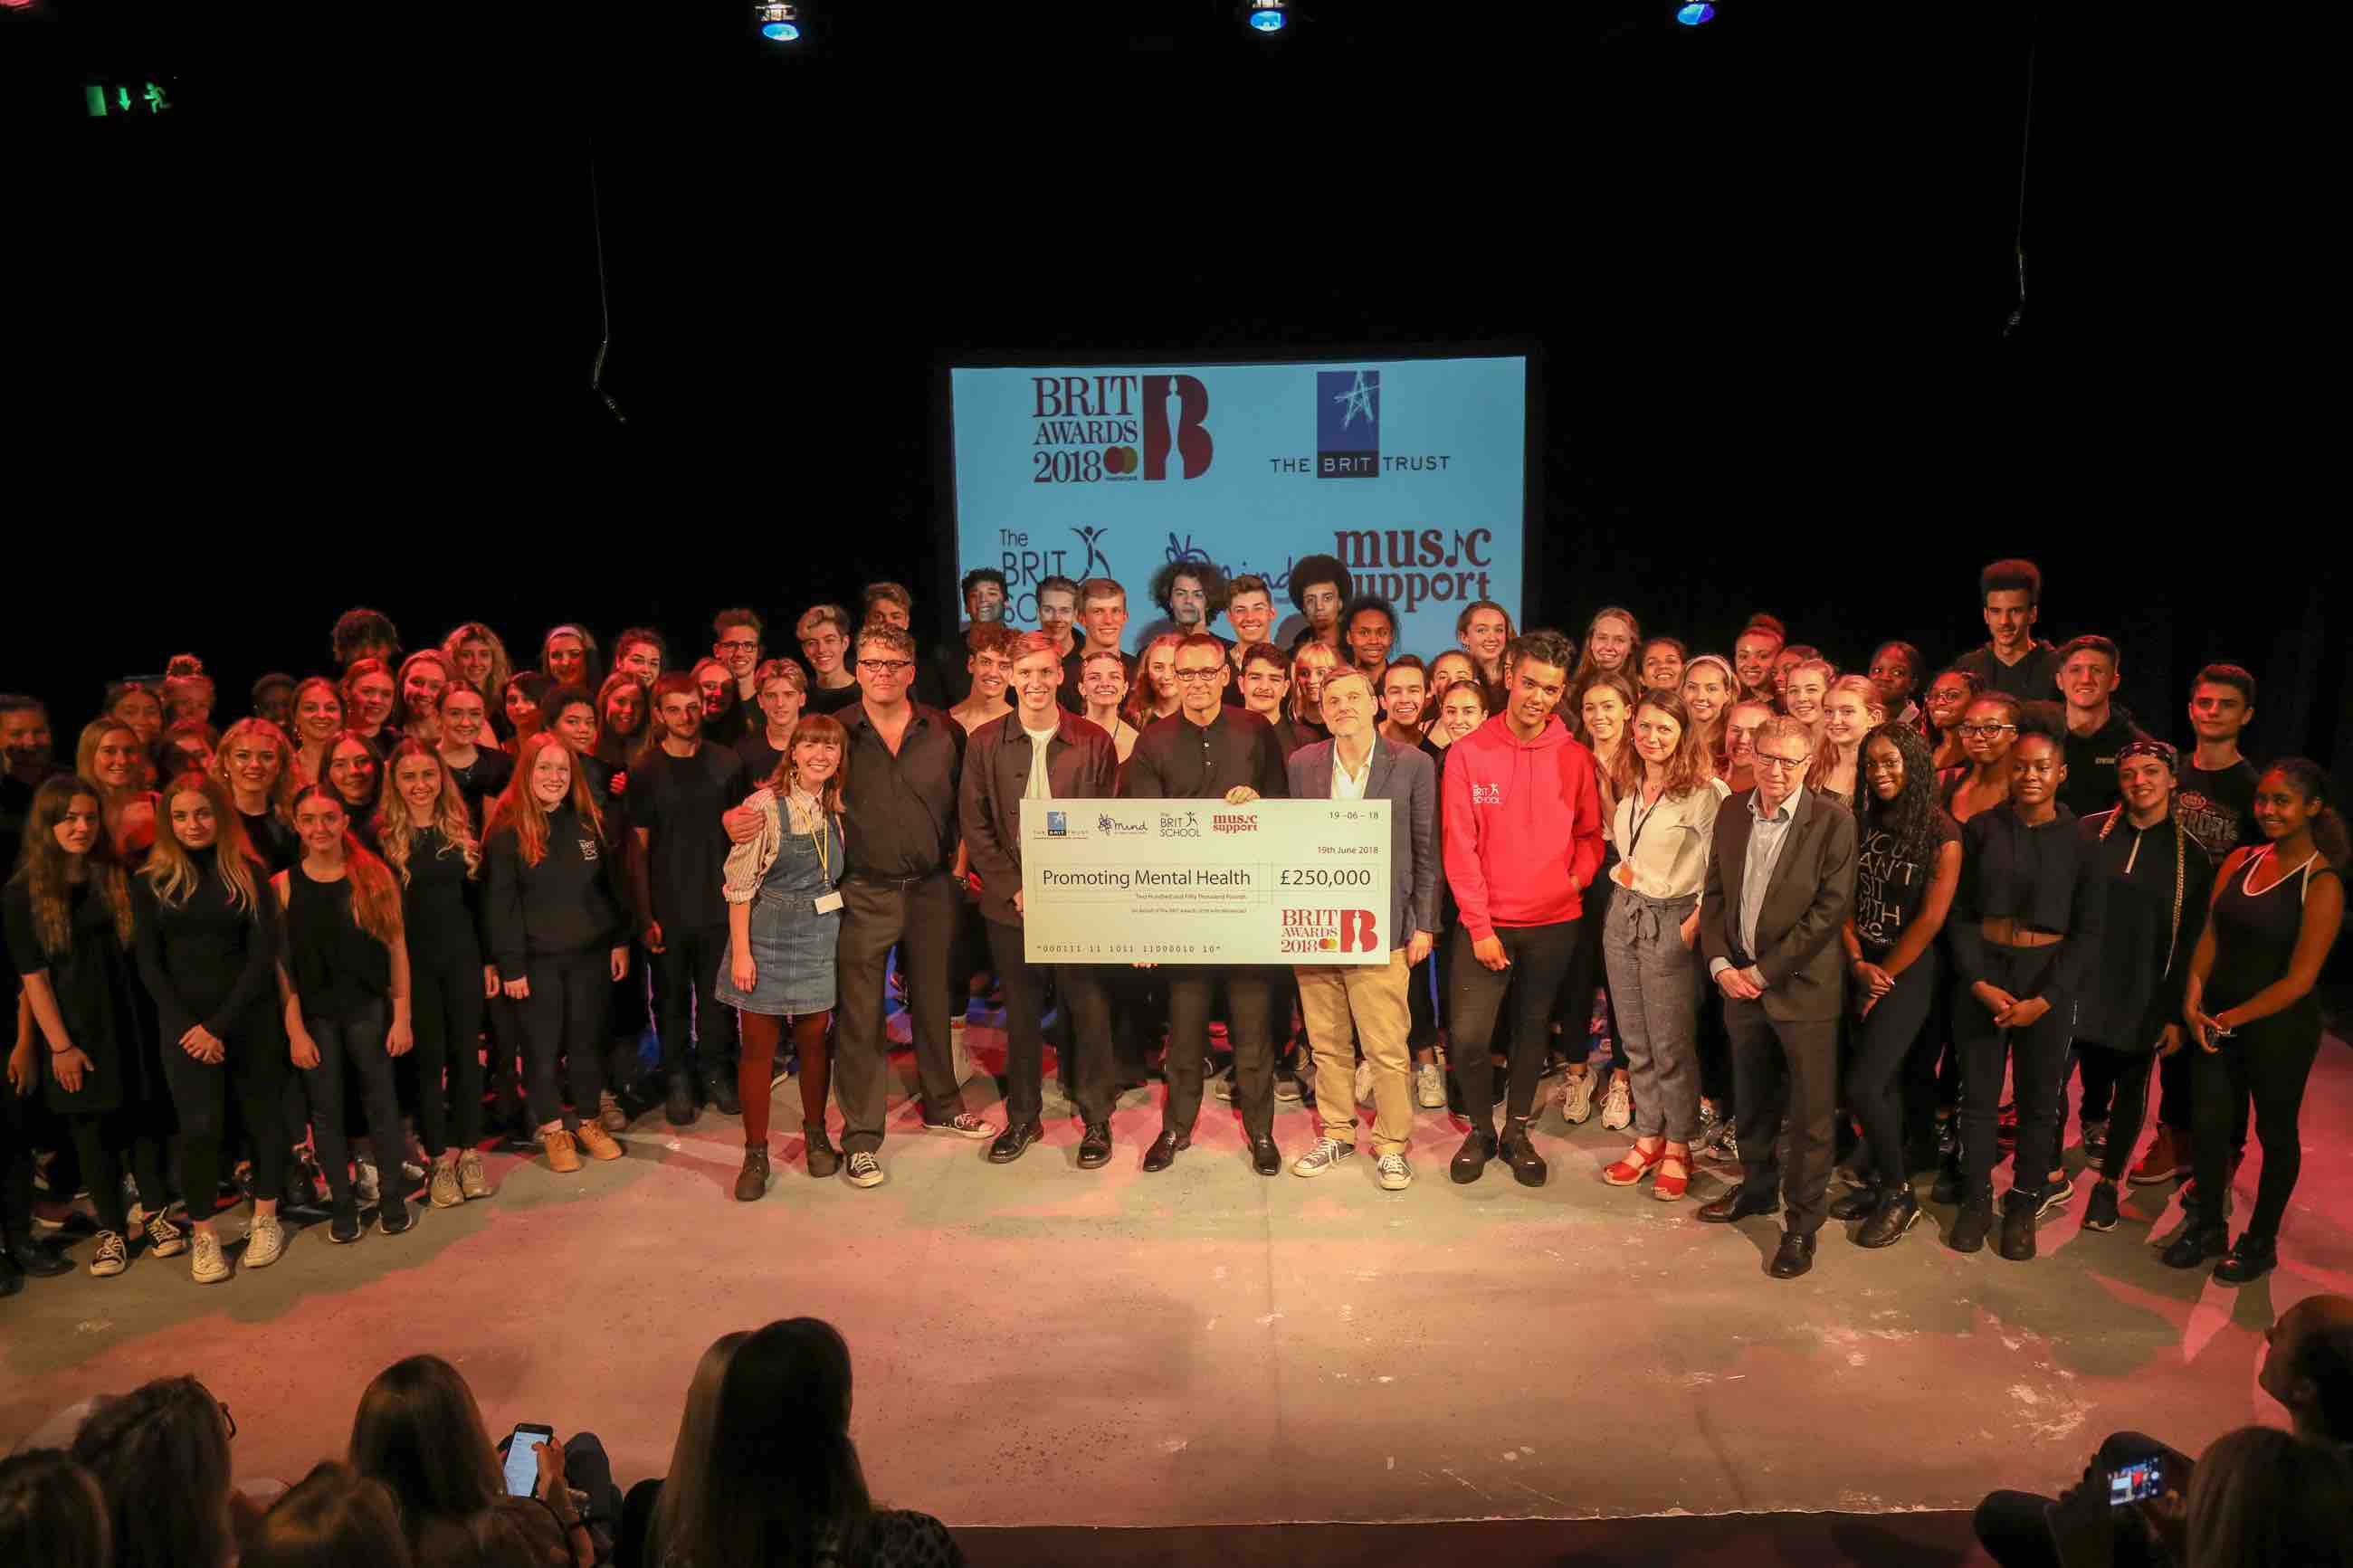 Mind, Music Support and The BRIT School BRITs Cheque presentation